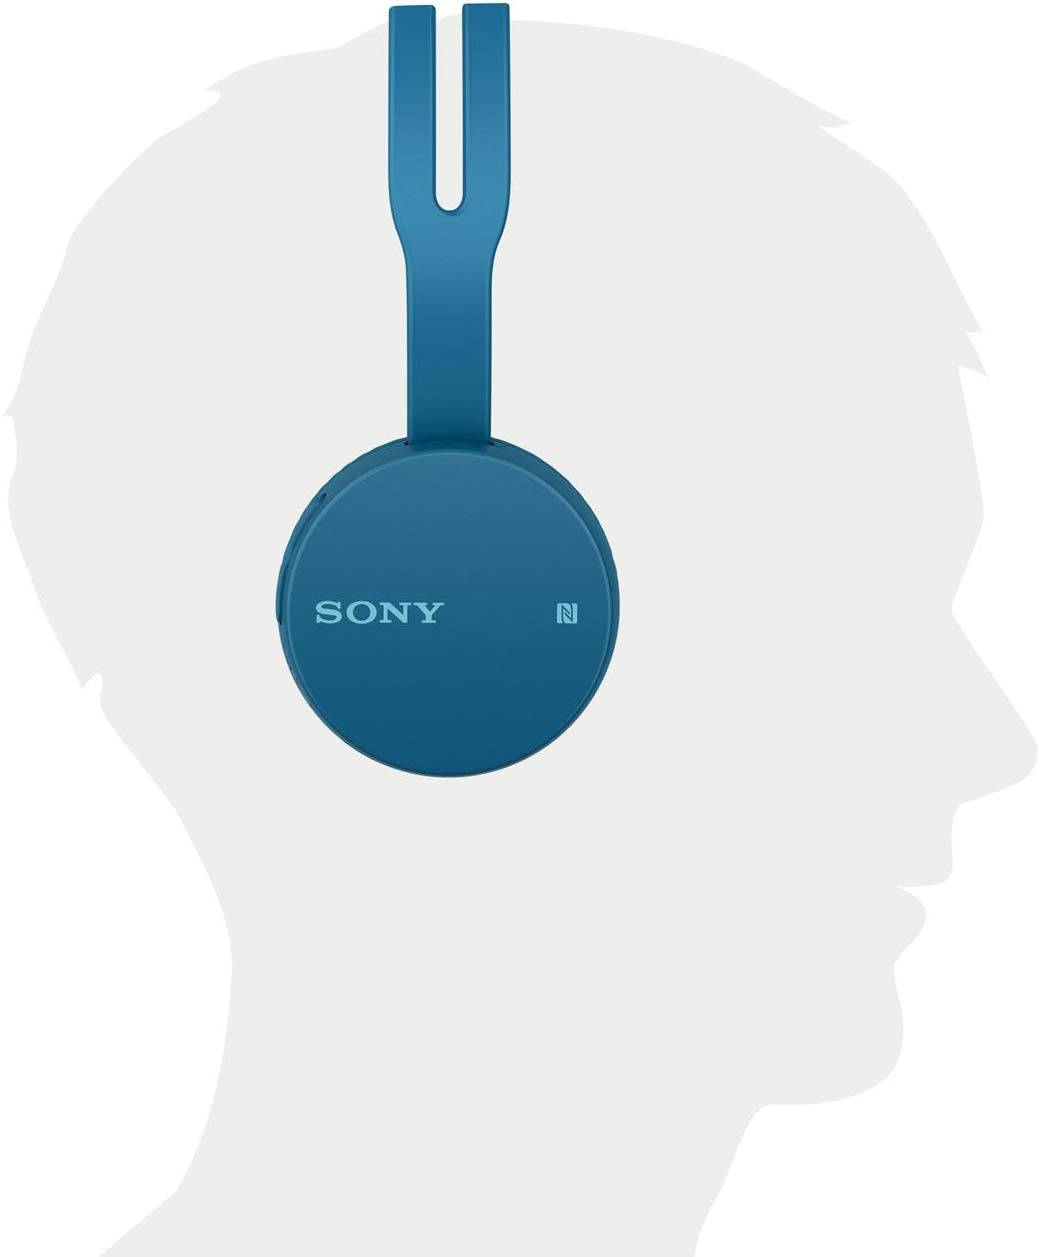 Sony WH-CH400 Wireless Headphones (Blue)